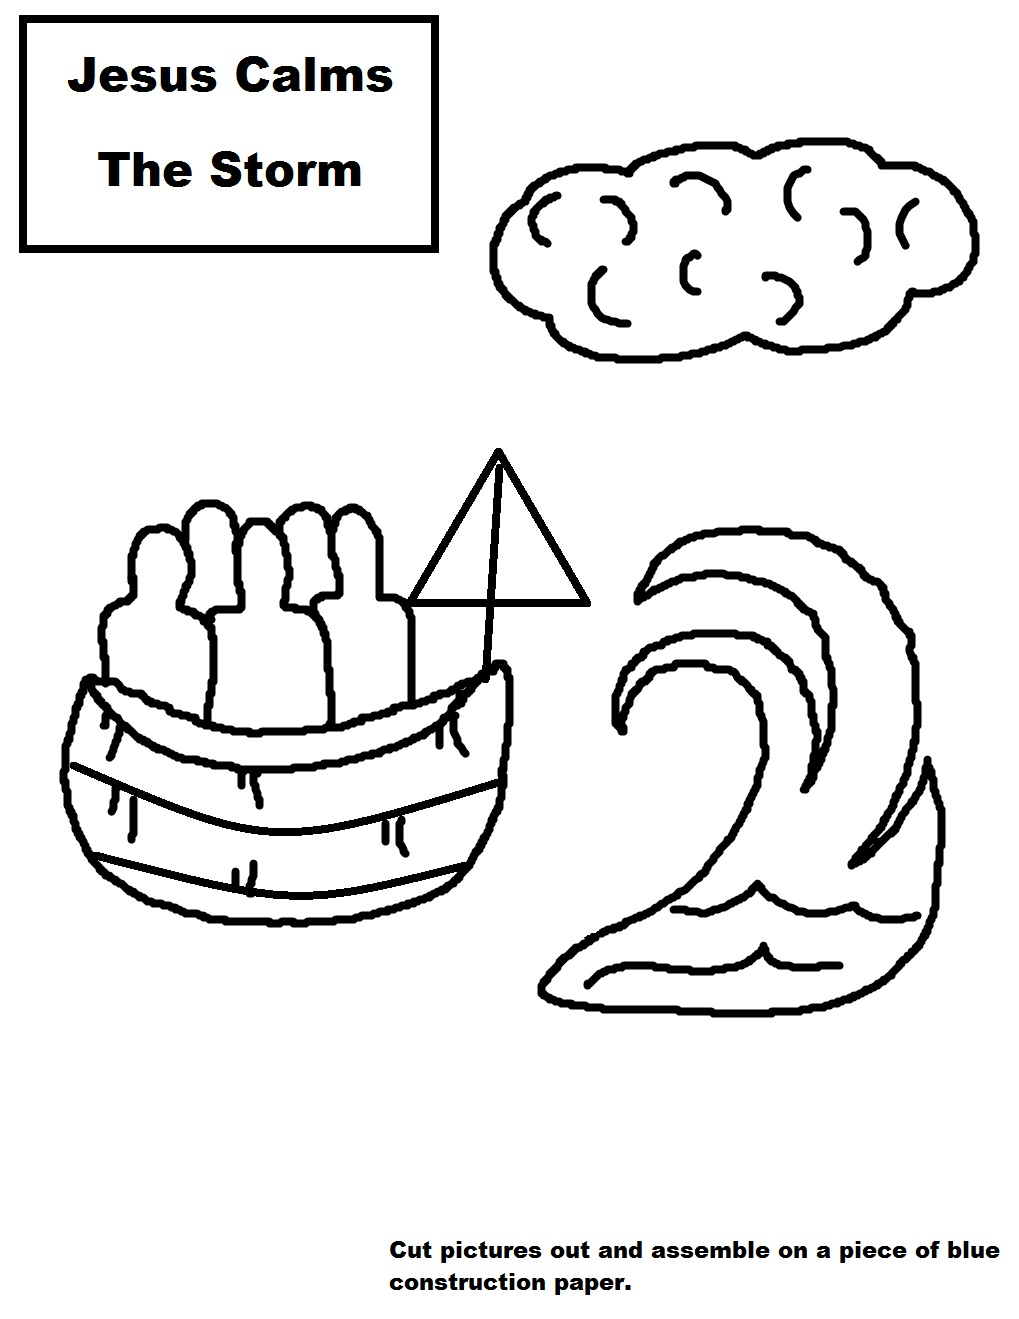 Coloring Pages For Jesus Calms The Storm : Jesus Calms The Storm Sunday School Lesson